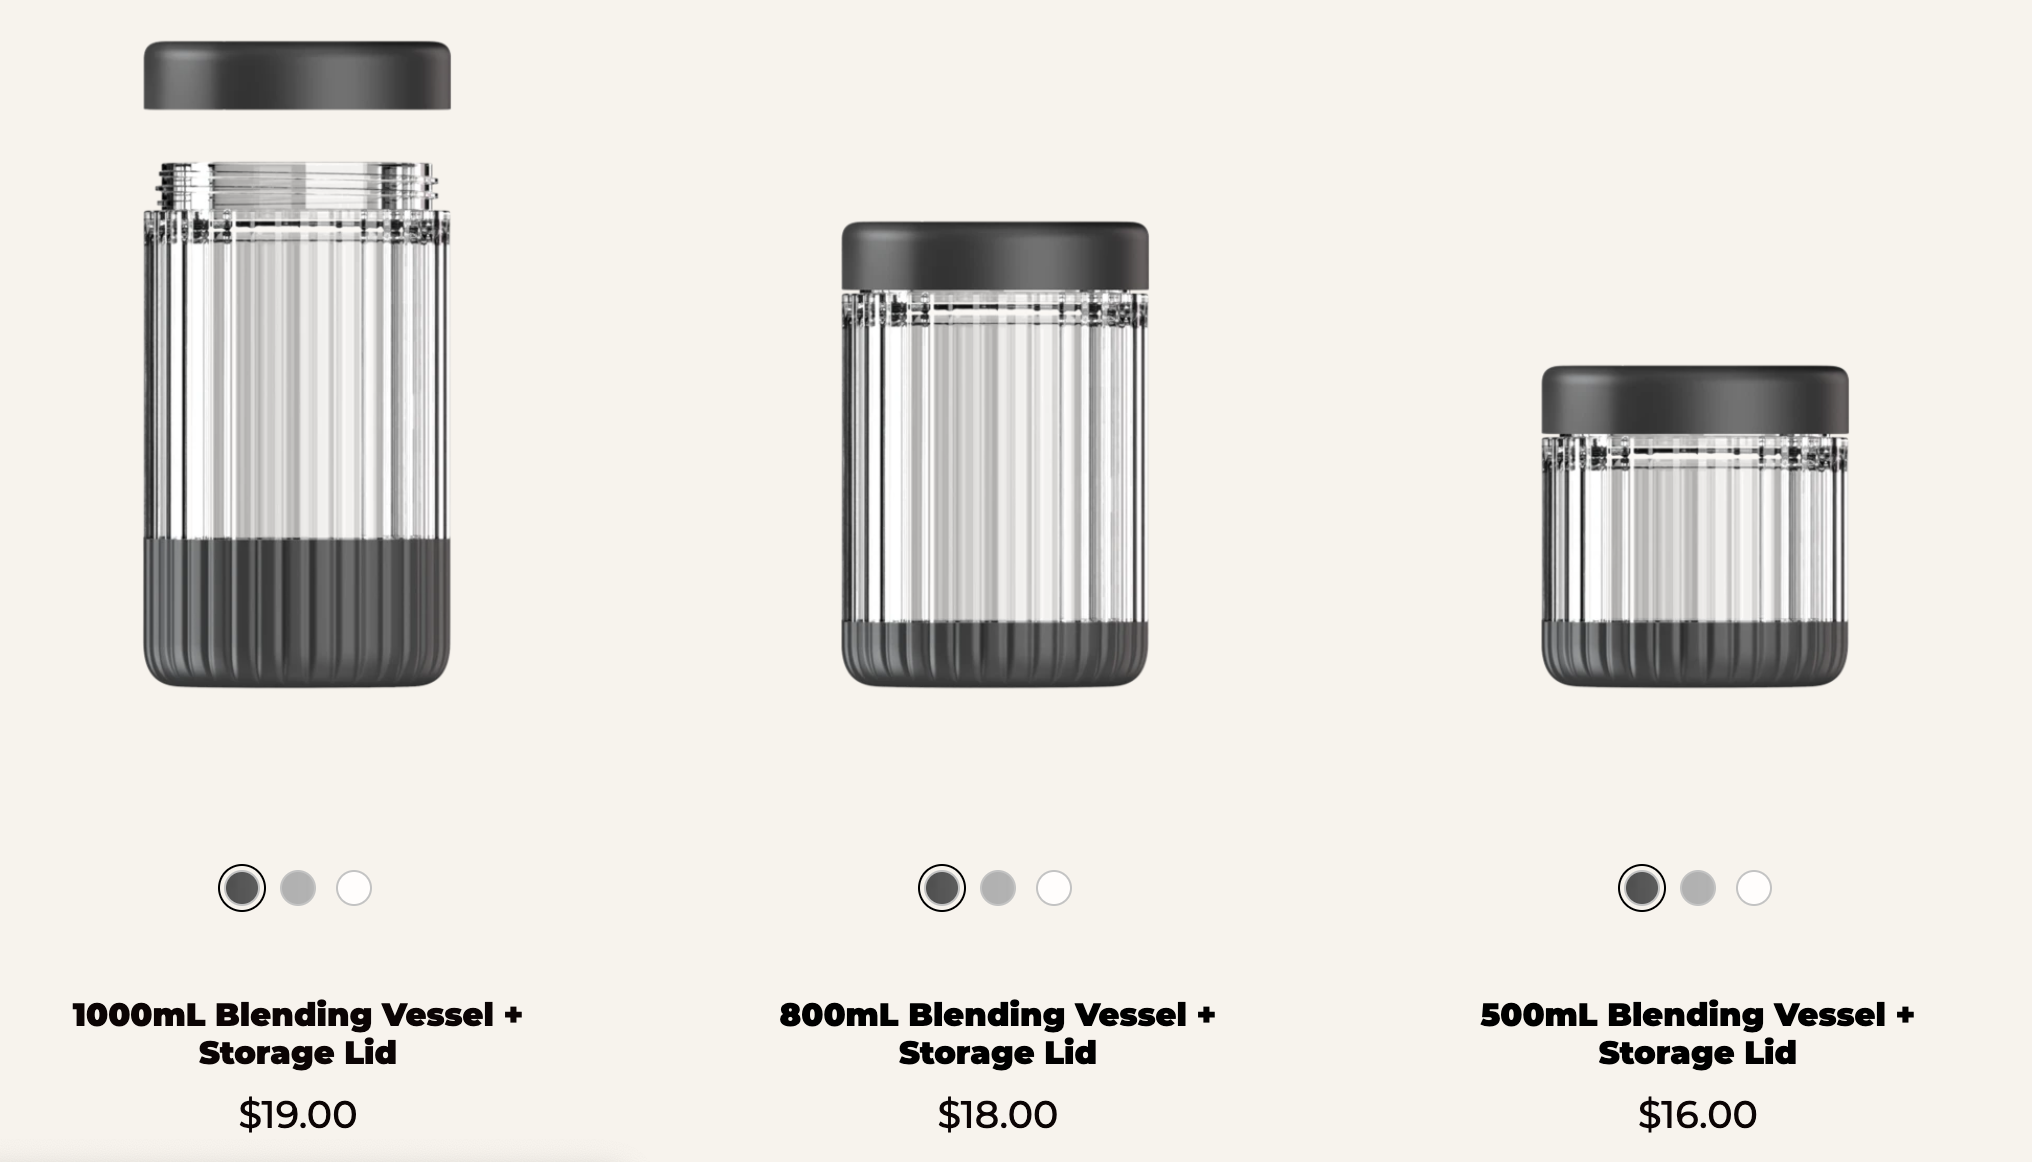 The three container sizes